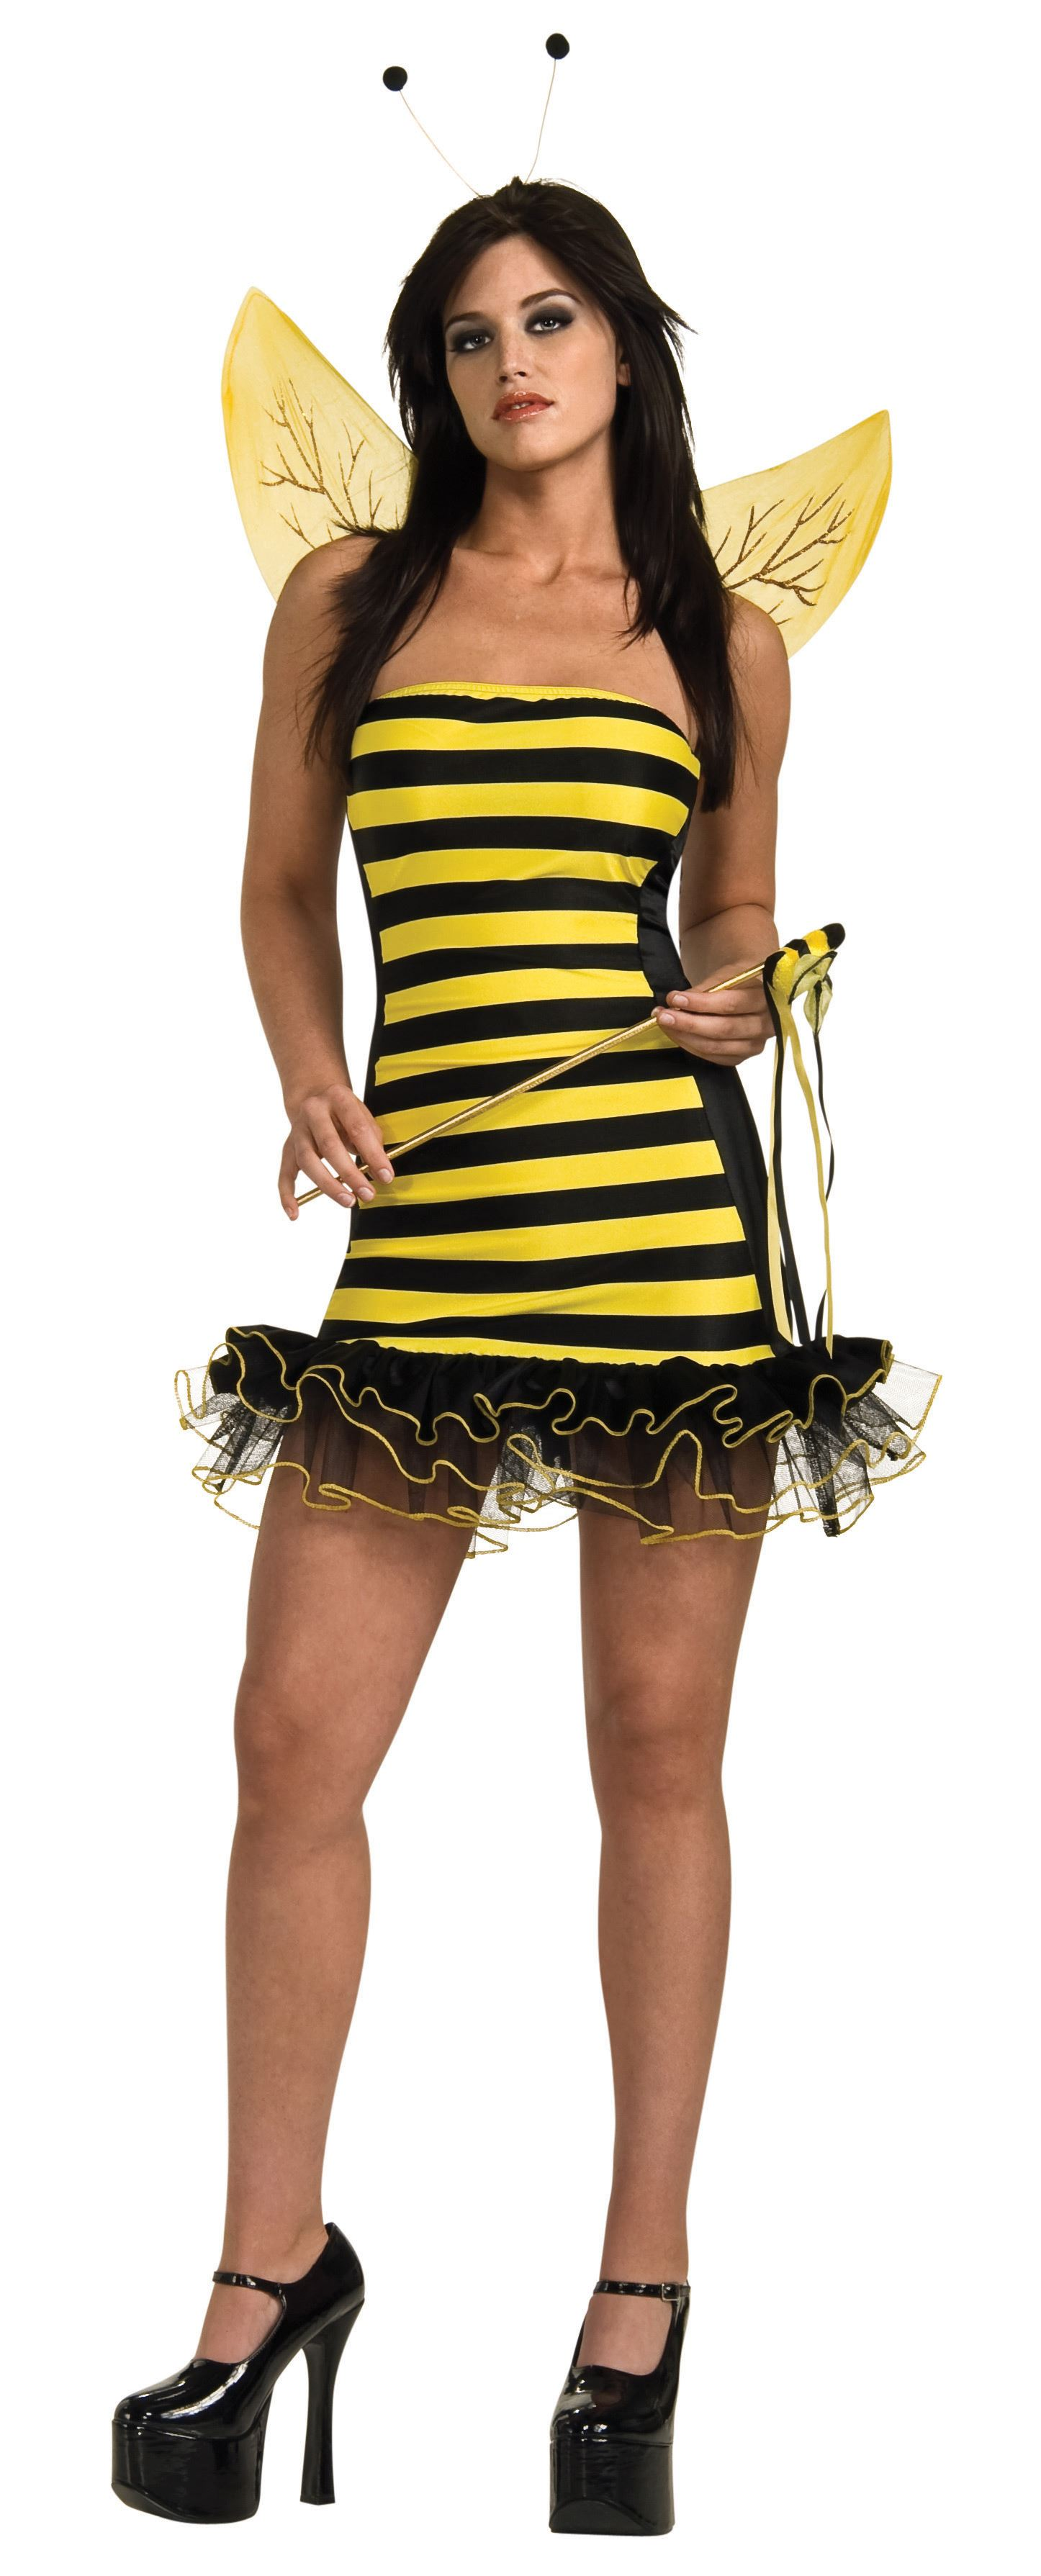 Adult Buzzy Bee Women Honey Bee Costume  sc 1 st  The Costume Land & Adult Buzzy Bee Women Honey Bee Costume | $29.99 | The Costume Land